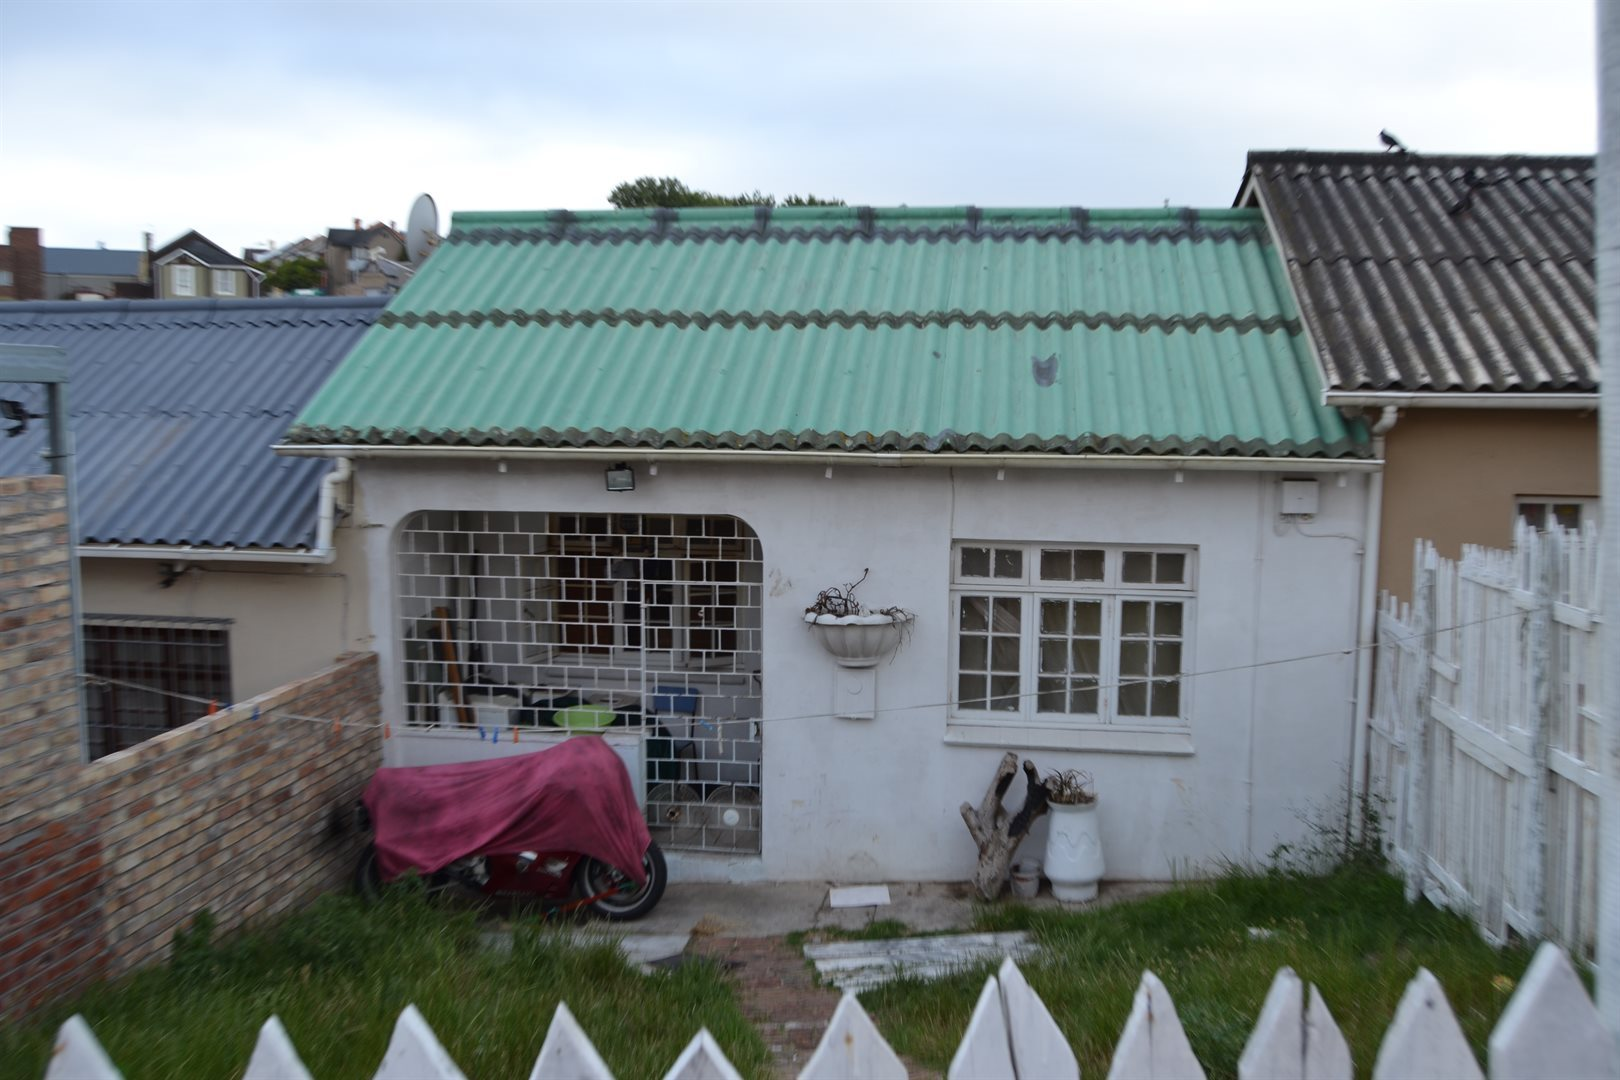 Property and Houses for sale in Eastern Cape, House, 2 Bedrooms - ZAR 999,999,999